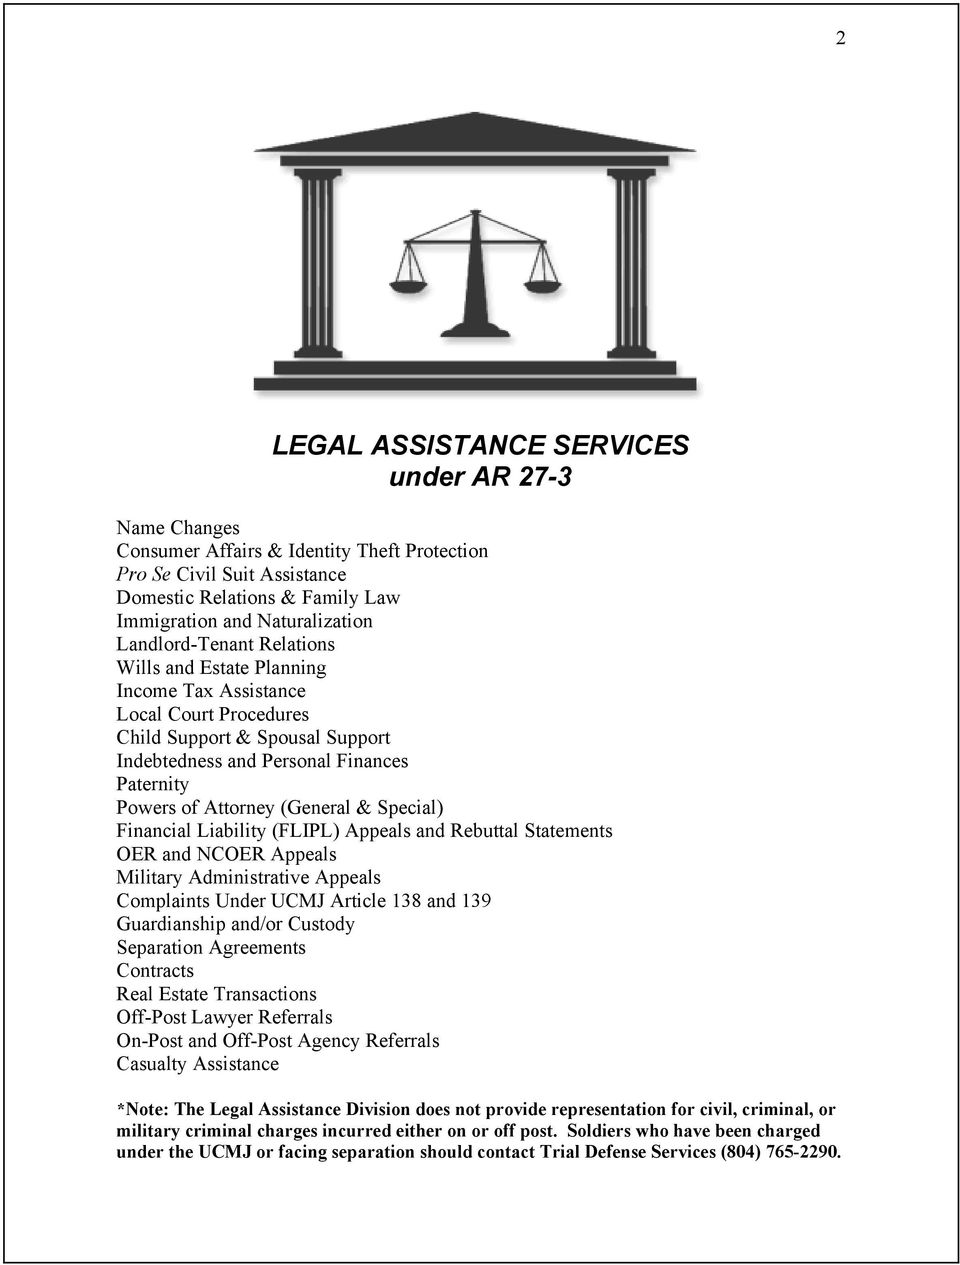 (General & Special) Financial Liability (FLIPL) Appeals and Rebuttal Statements OER and NCOER Appeals Military Administrative Appeals Complaints Under UCMJ Article 138 and 139 Guardianship and/or